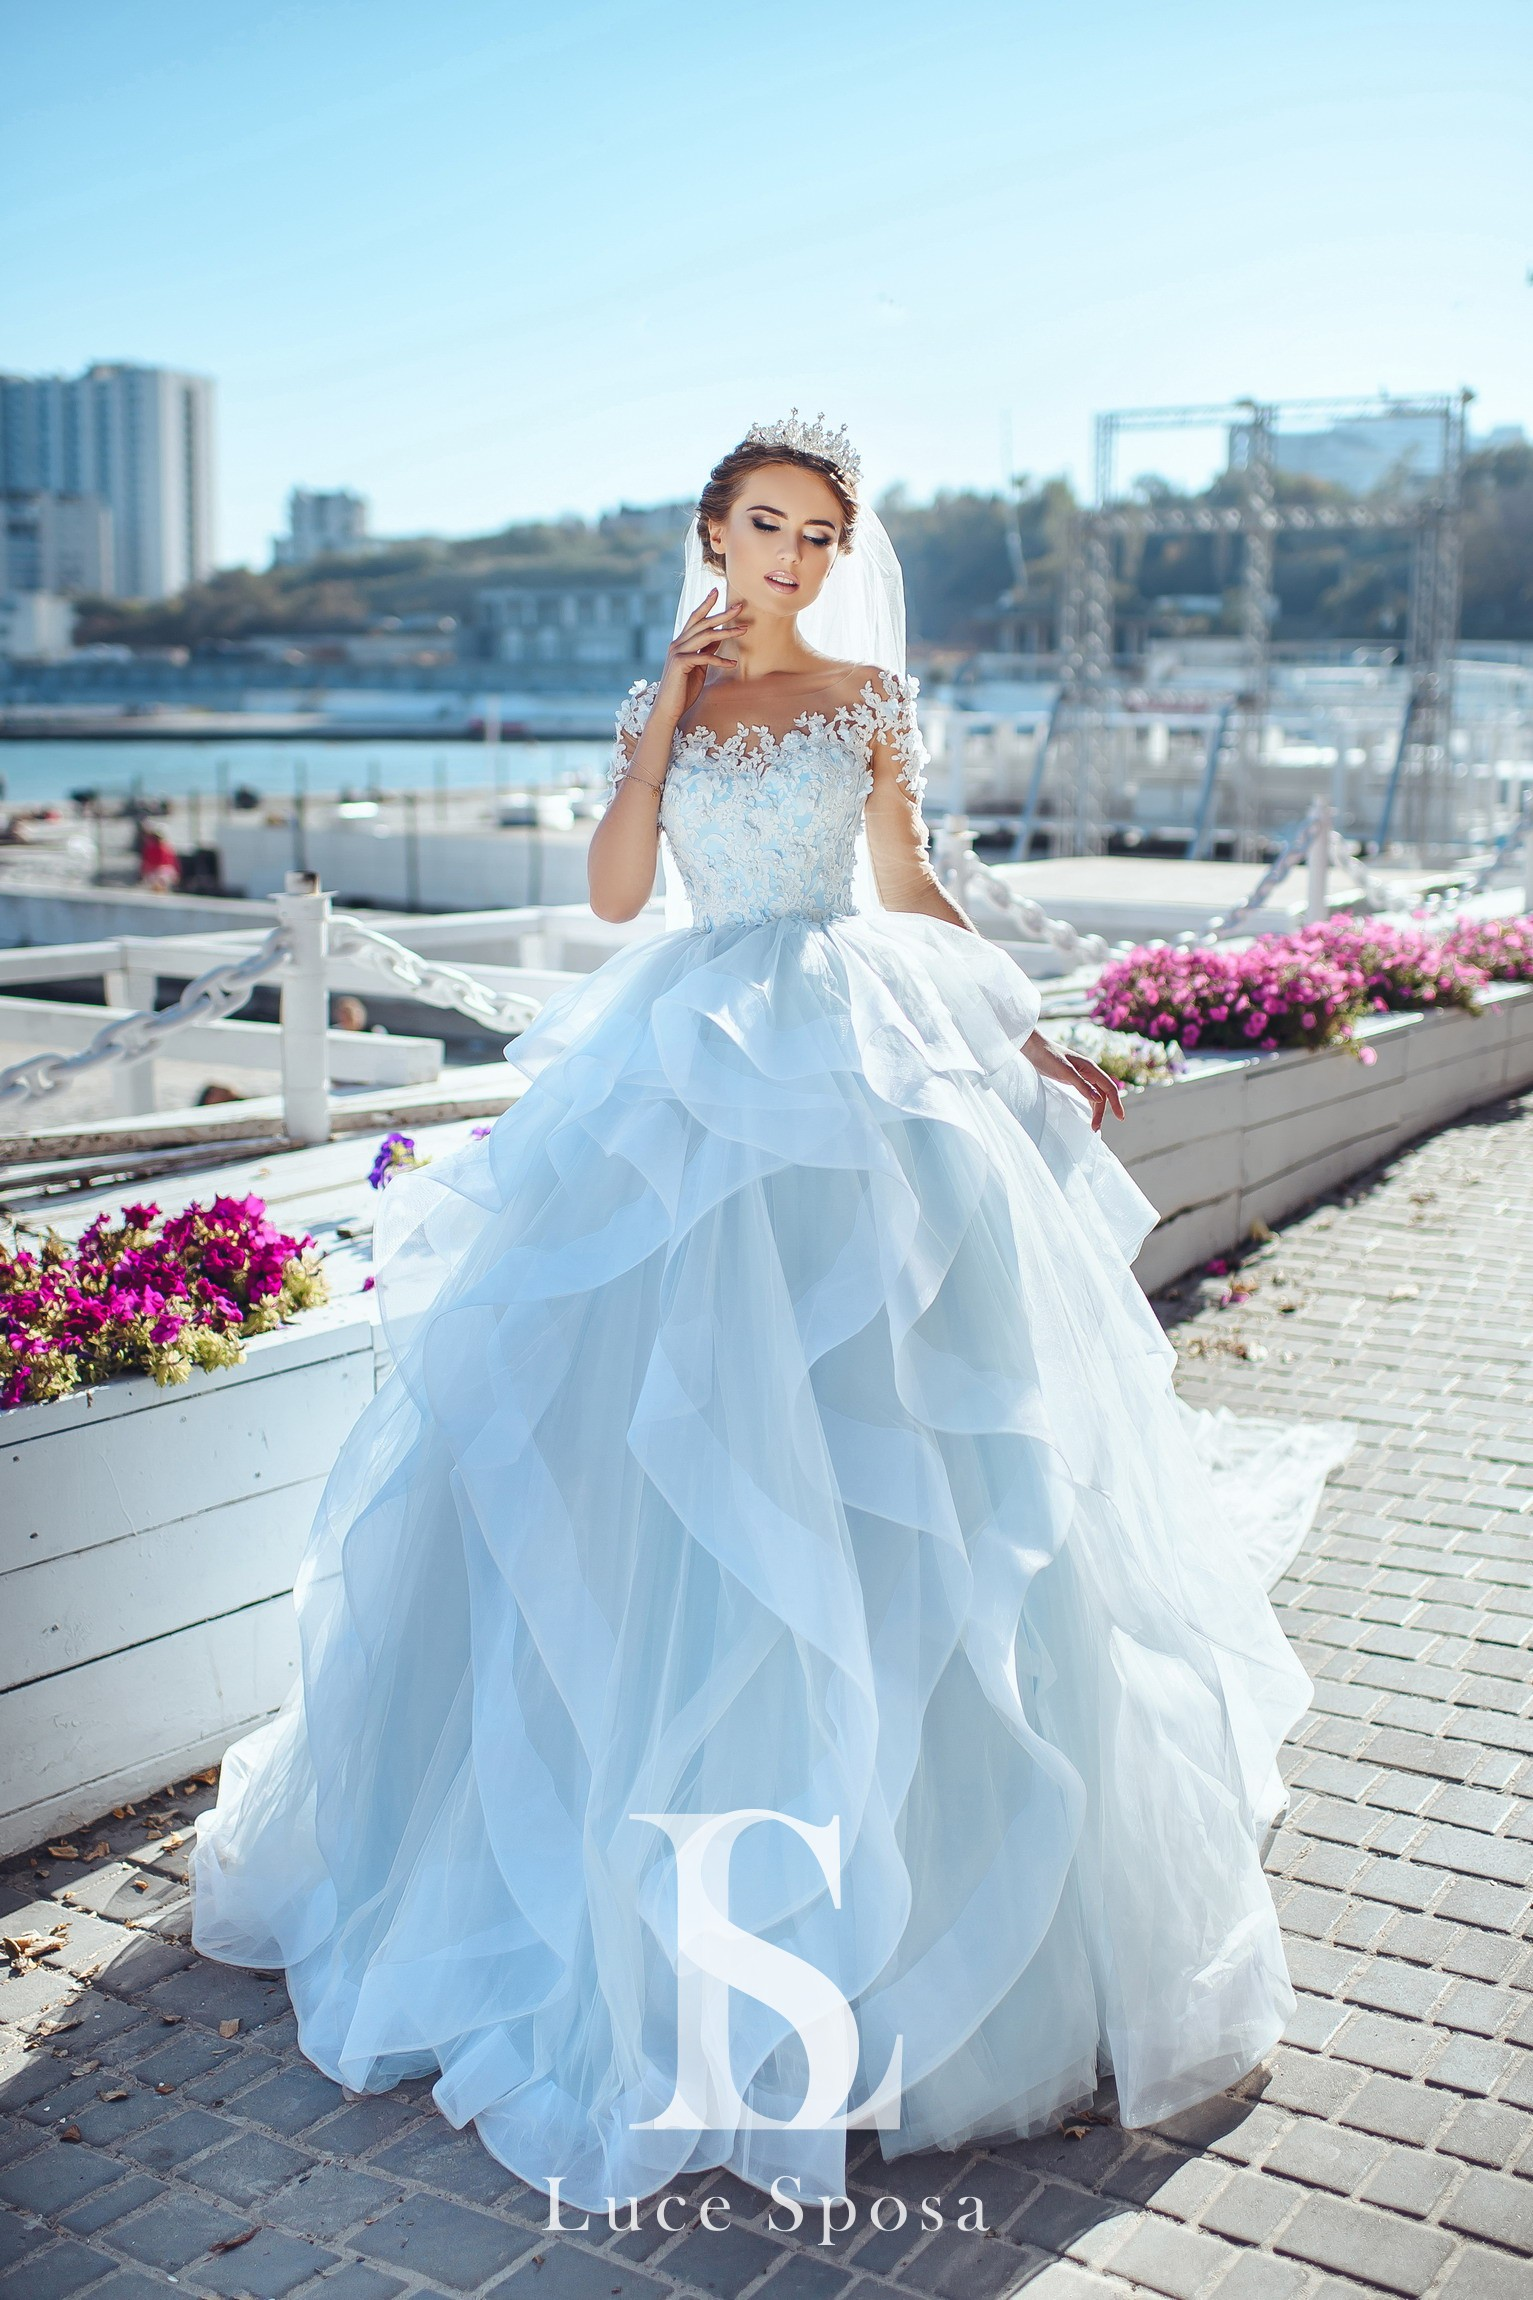 https://lucesposa.com/images/stories/virtuemart/product/ABB_47825.jpg